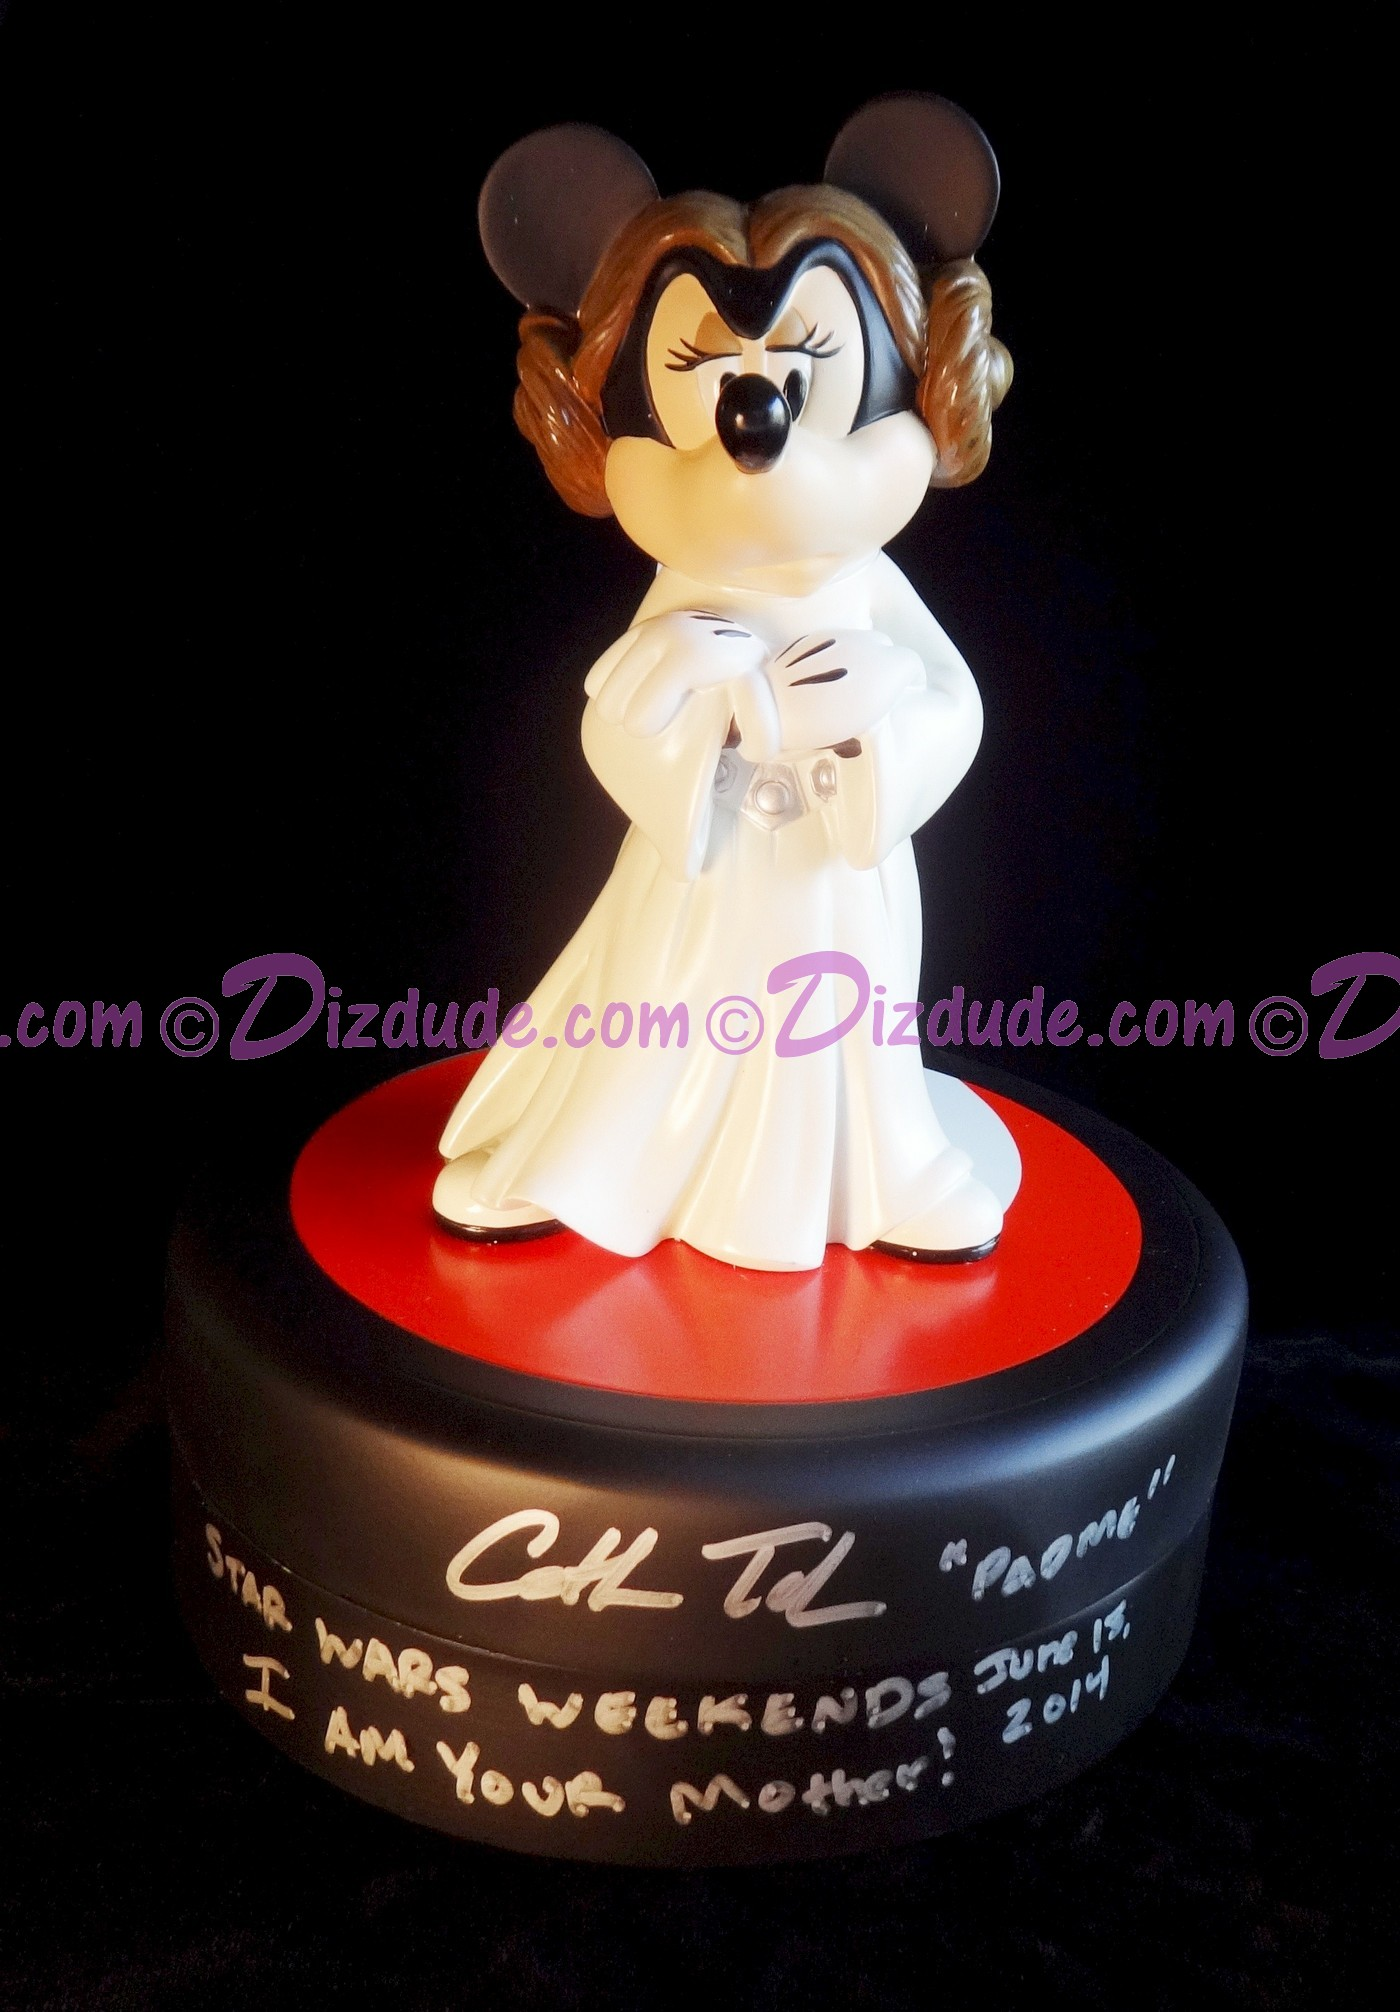 Minnie Mouse as Princess Leia Signed by Cat Taber - With Pin of LE 1977 & Signed by Costa Alavezos